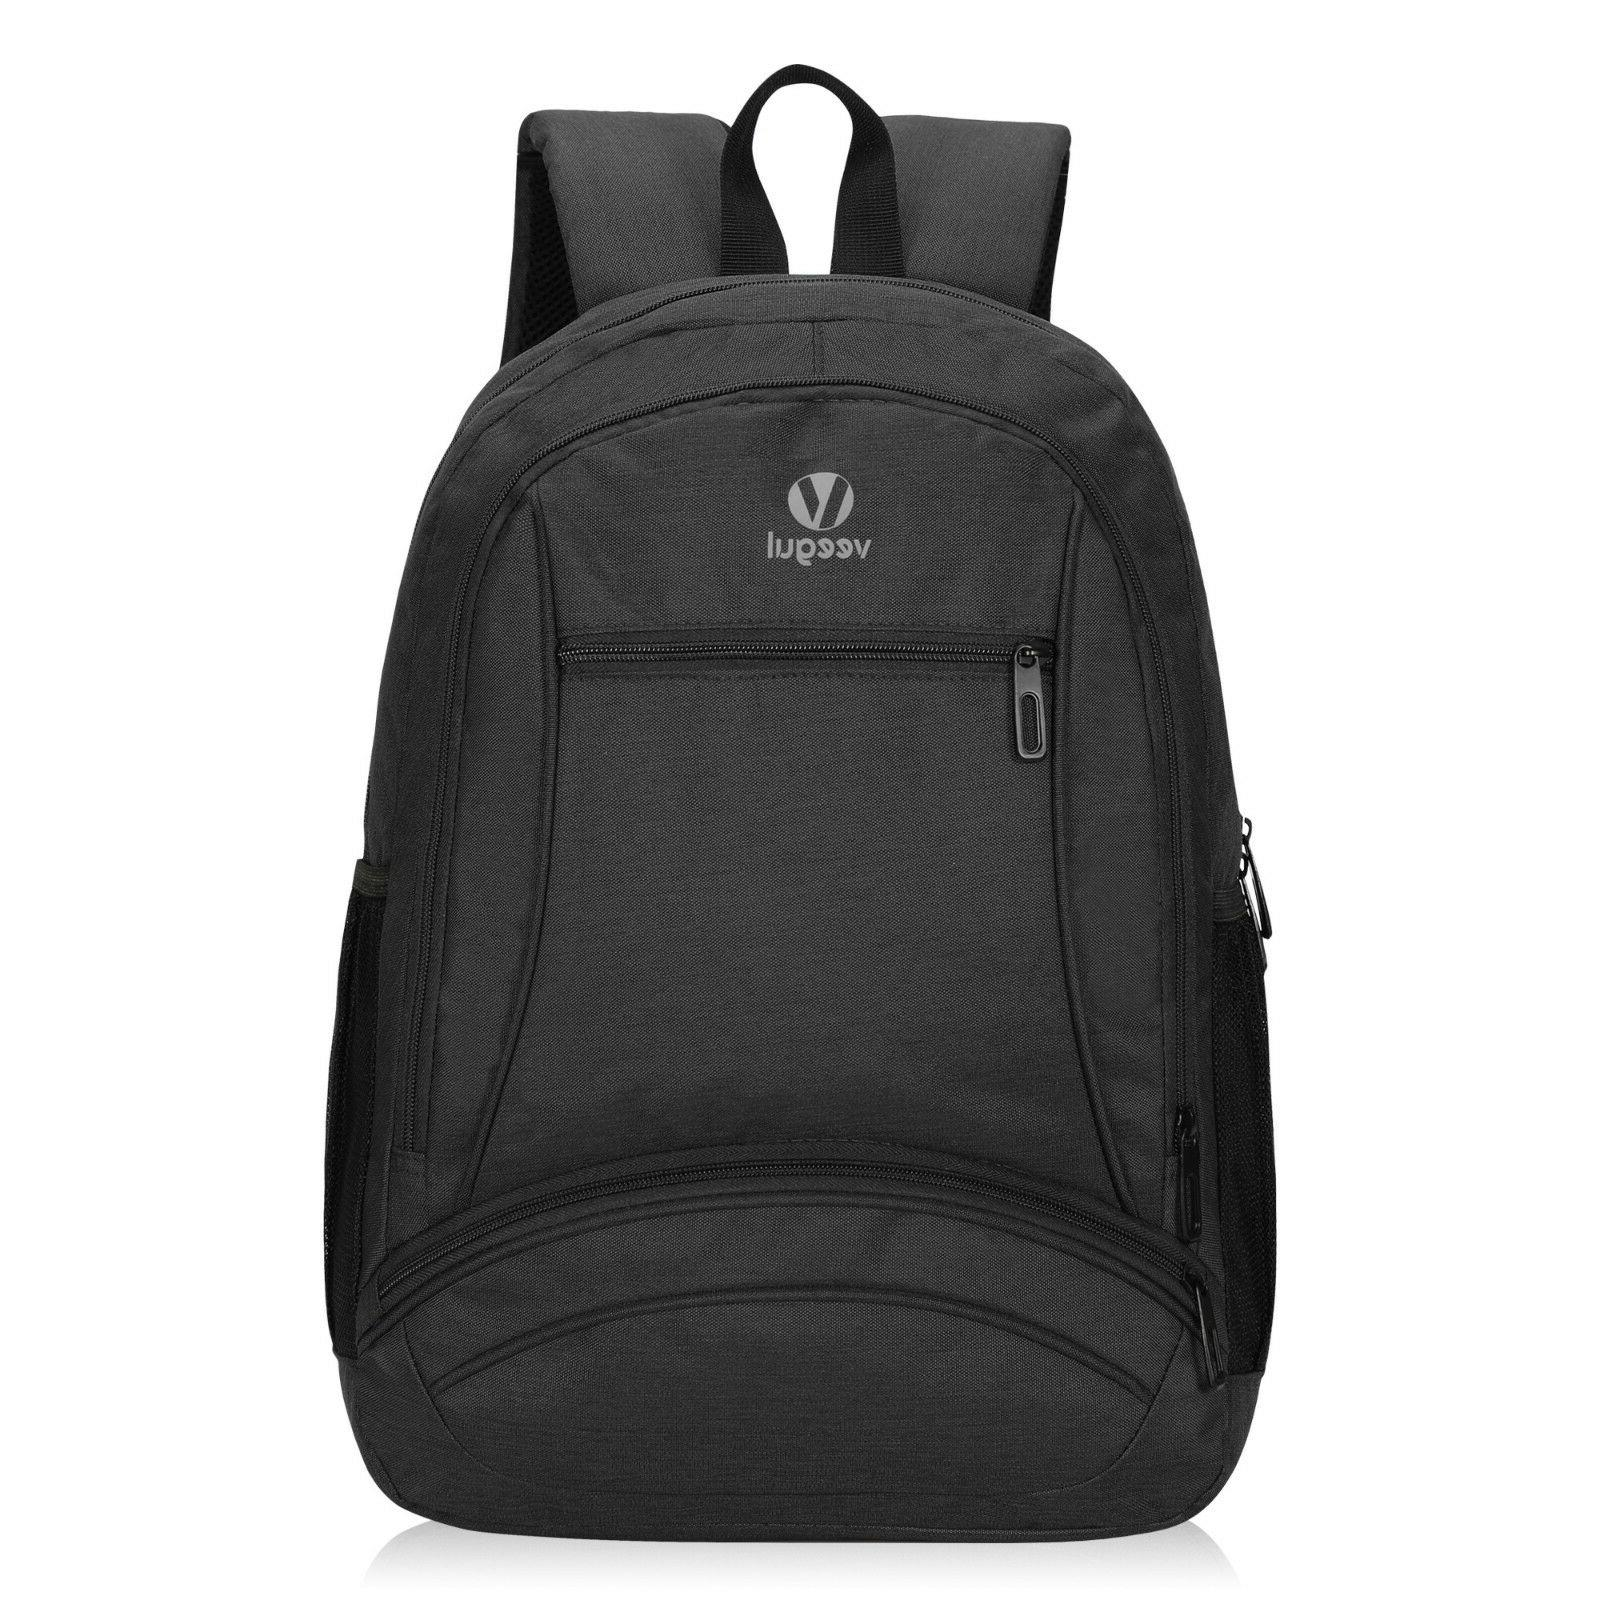 17 Capacity School Casual Satche